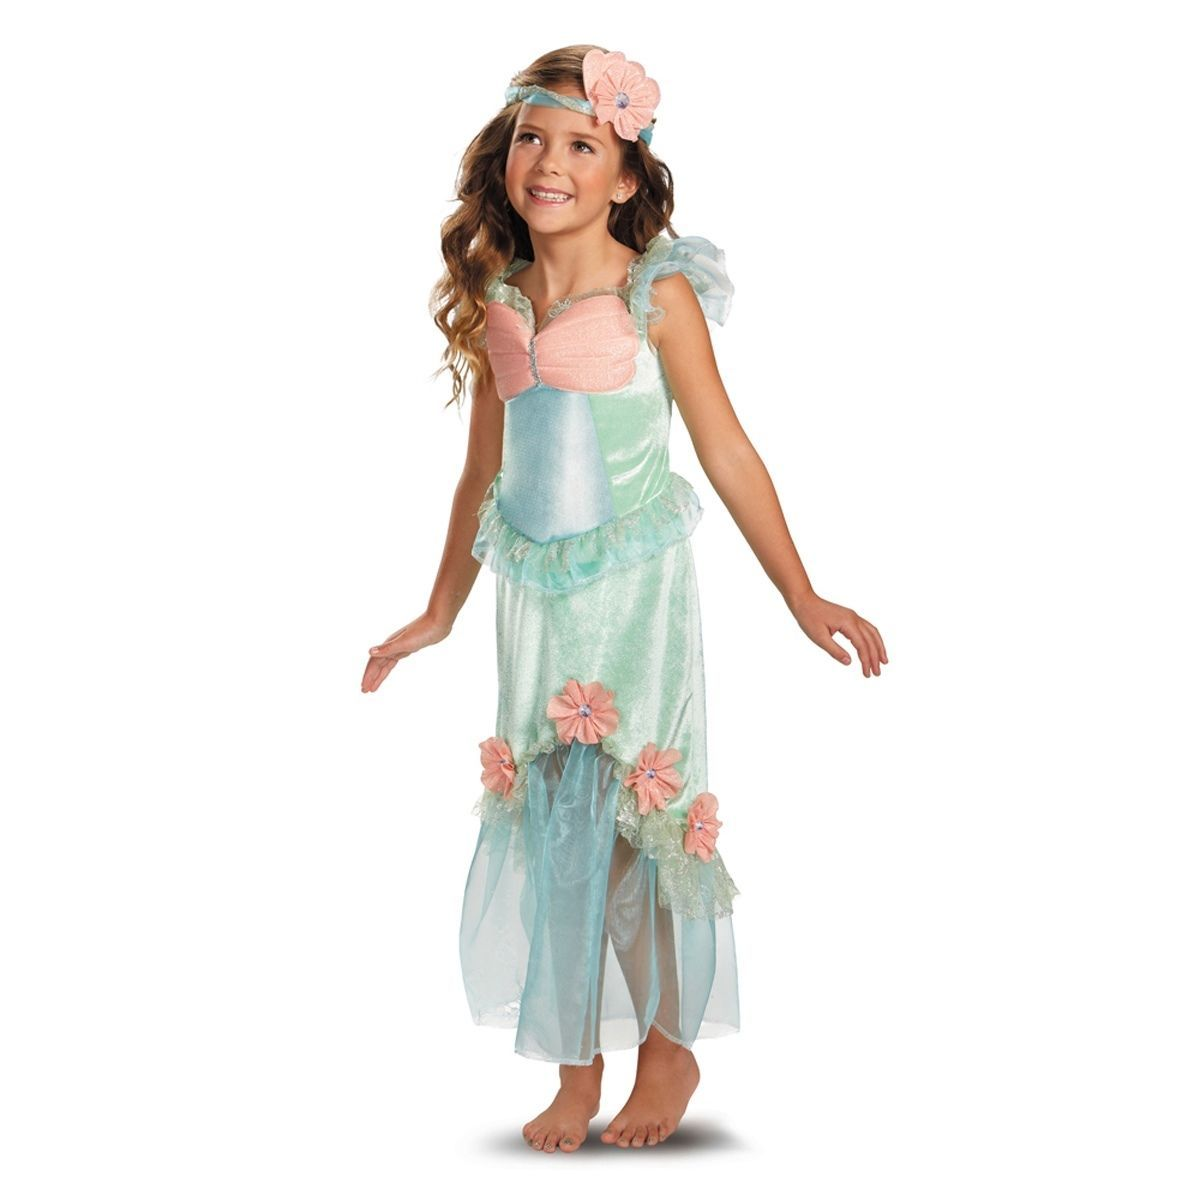 Precious Mystical Mermaid Princess Aqua/Coral Polyester Dress/Headpiece Disguise